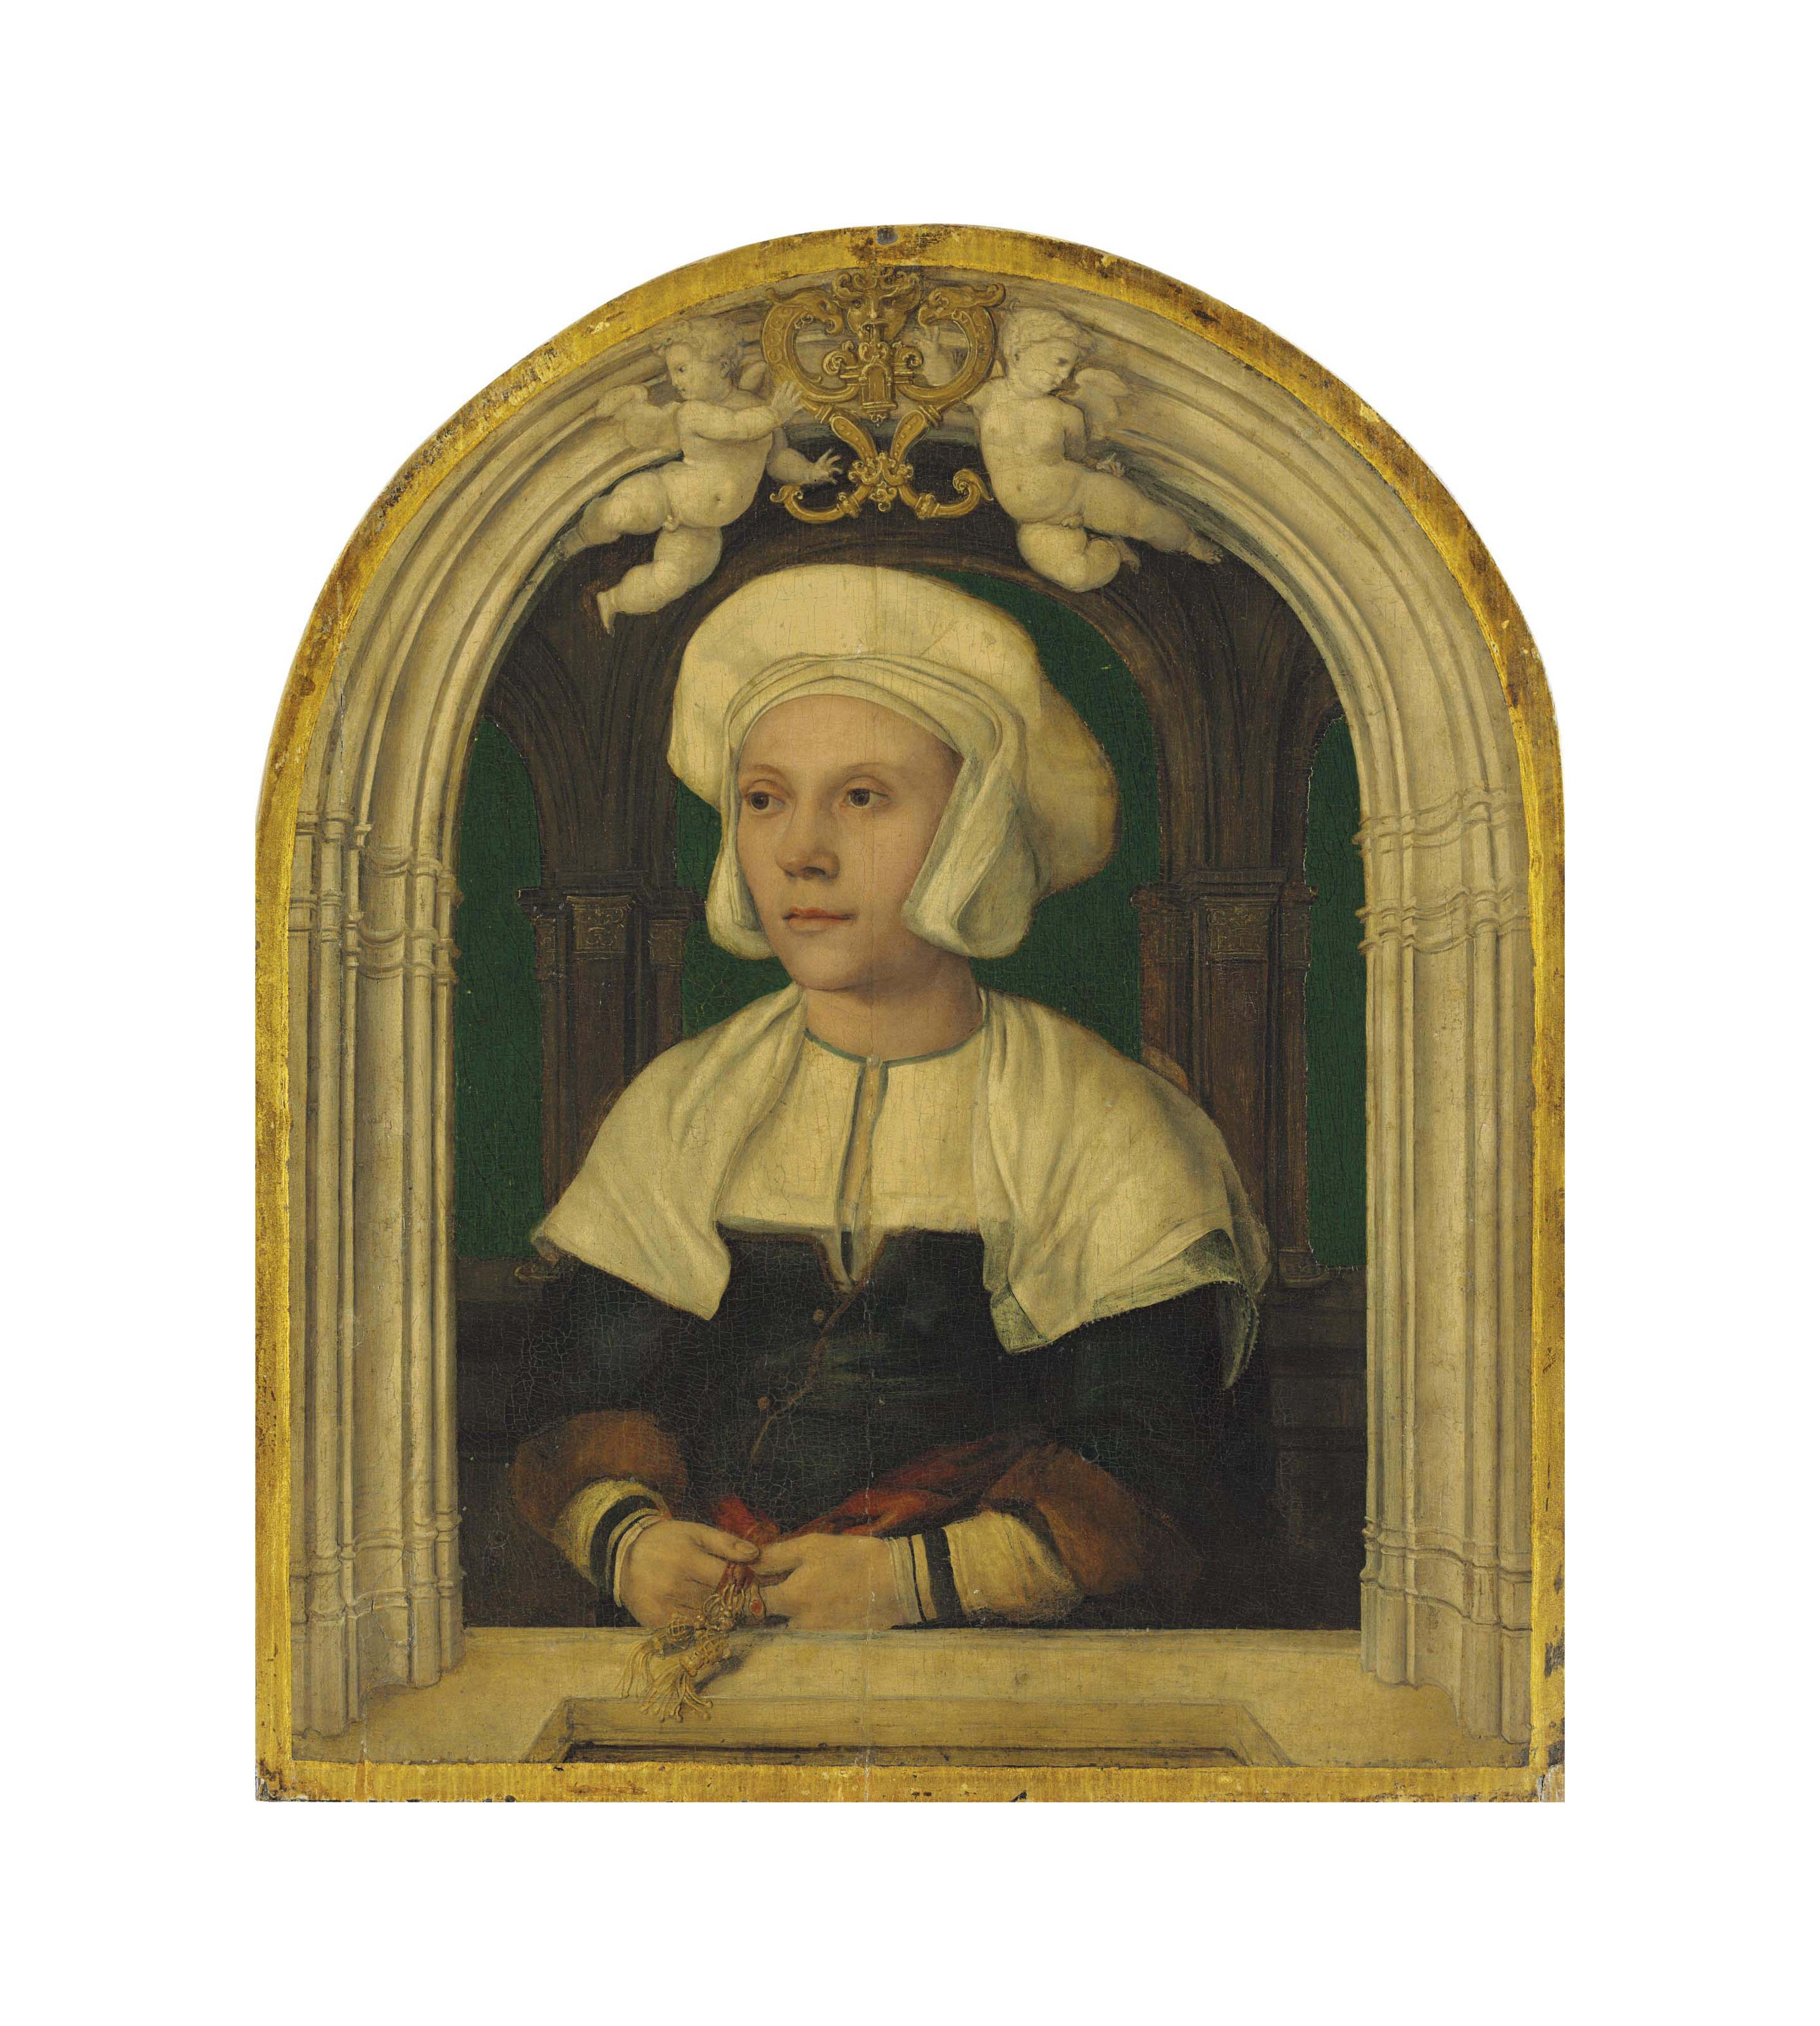 Portrait of a lady, half-length, in a white coif and green bodice with fur-trimmed sleeves, in a trompe-l'oeil architectural setting with putti